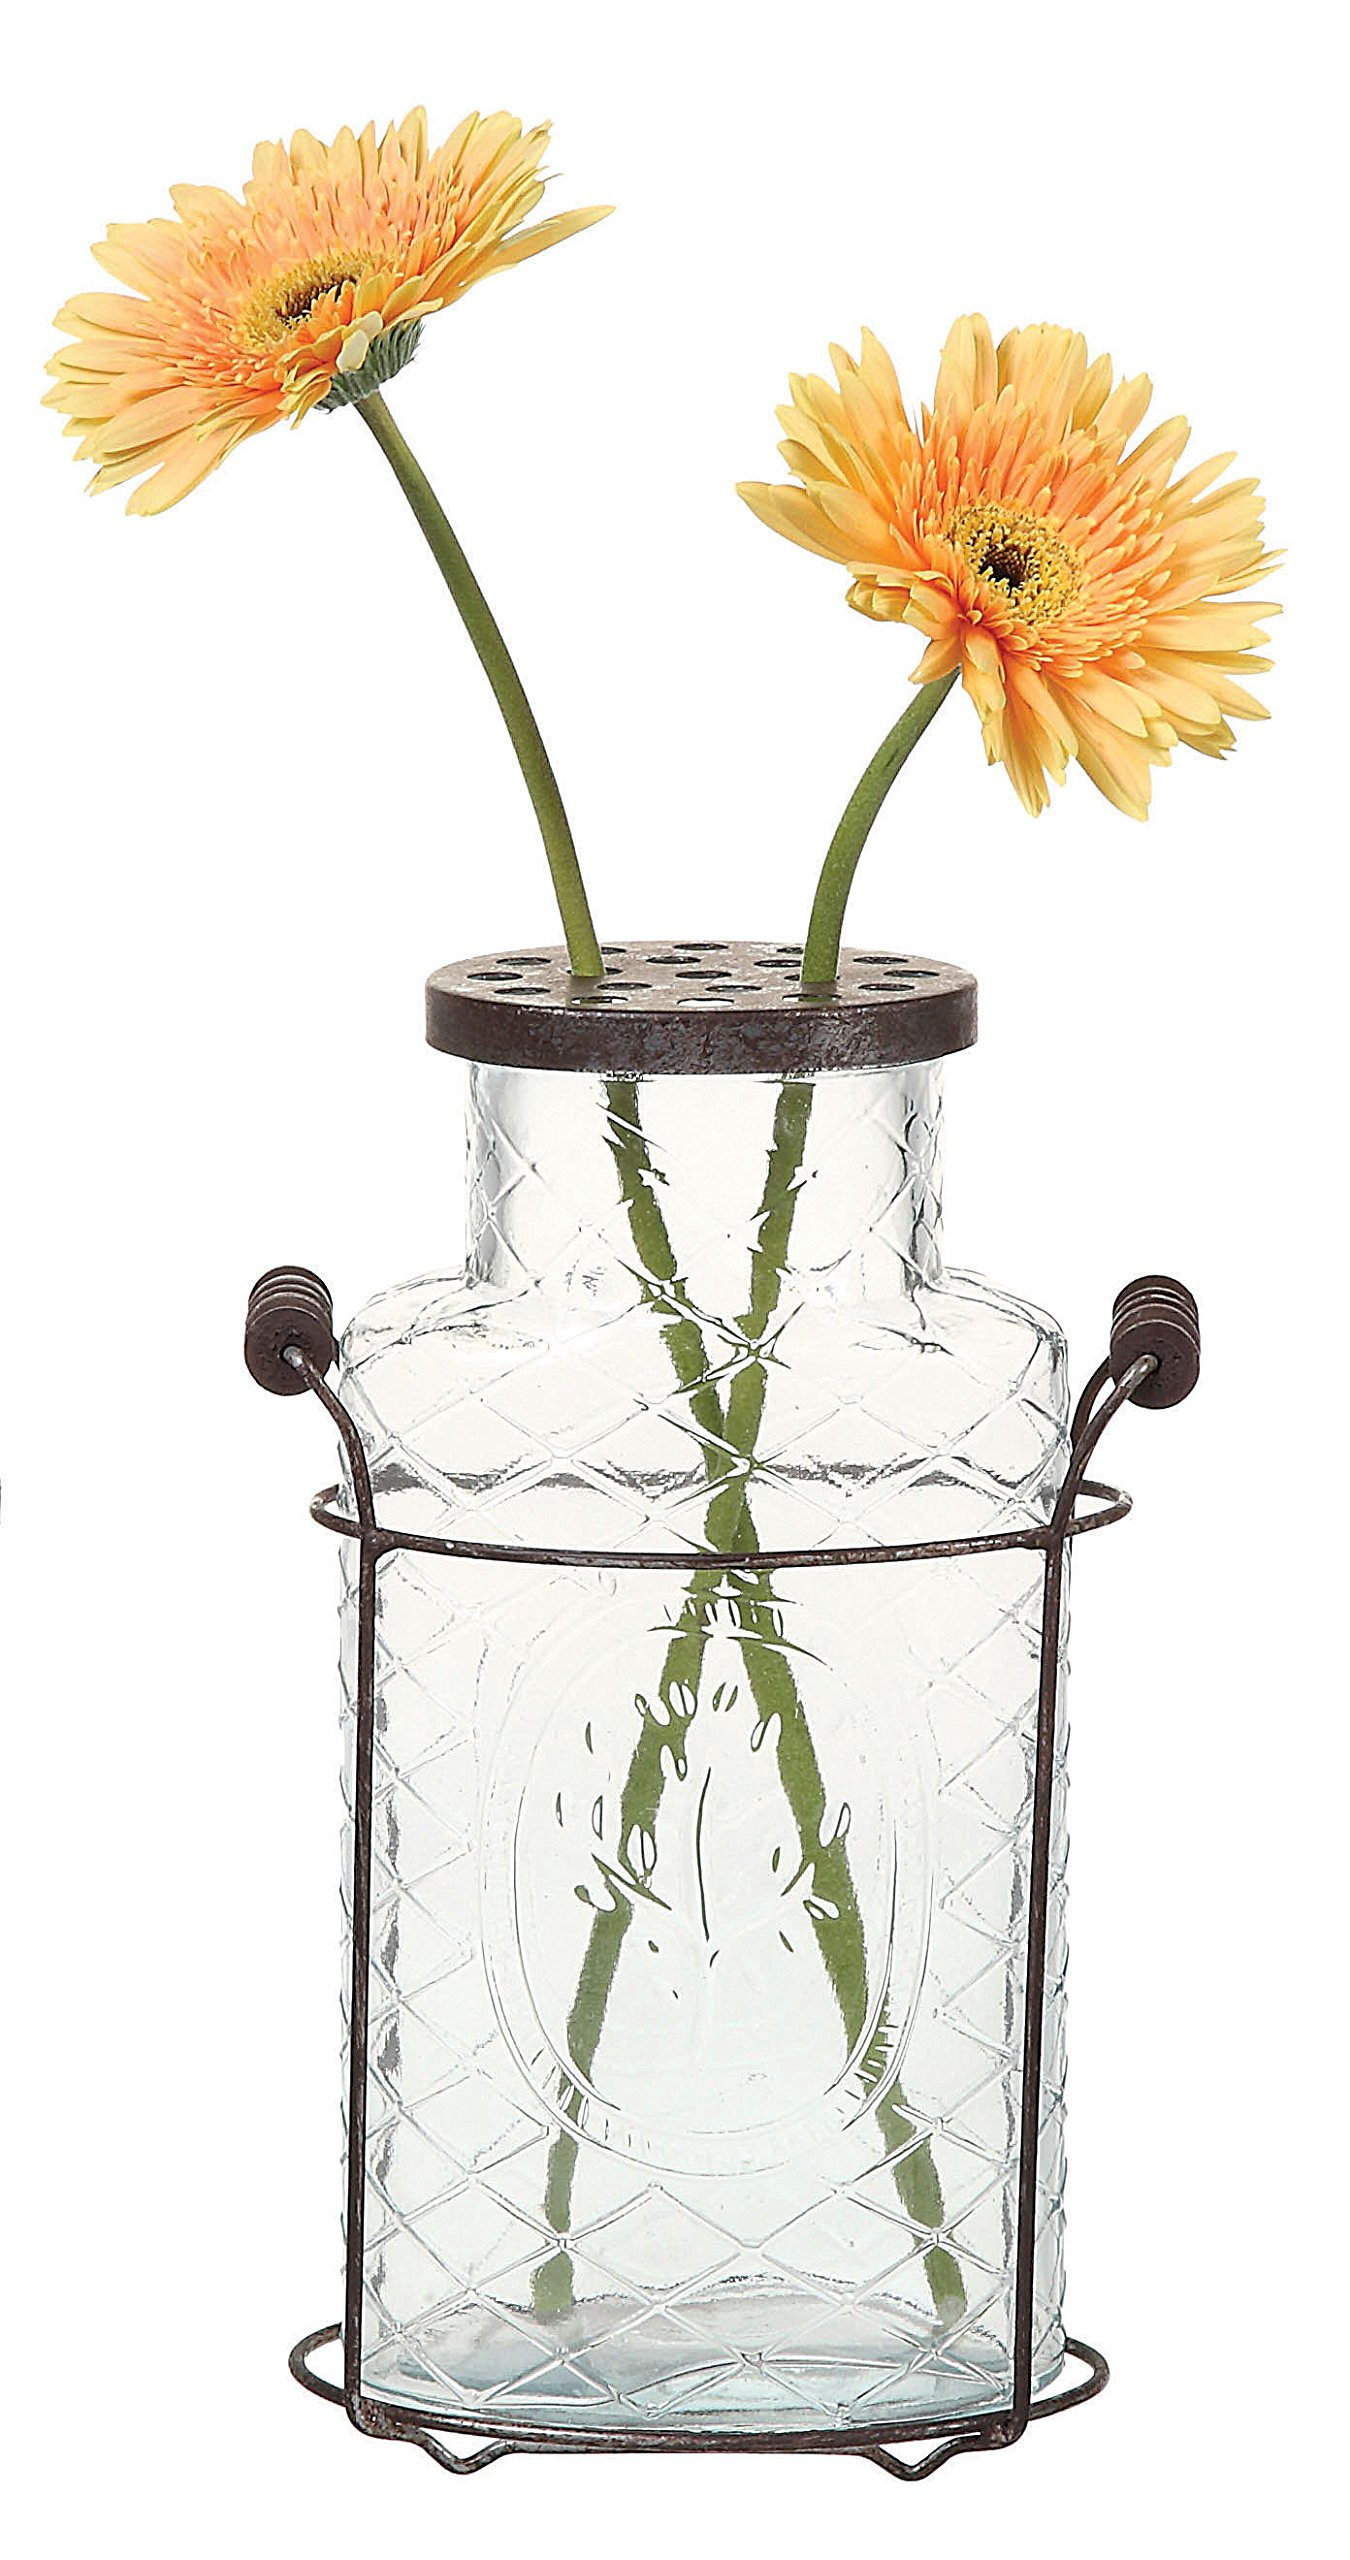 "Creative Co-Op DE3875 Glass vase in Metal Stand with Metal Frog Lid - Metal & glass construction Holder is 6.5""L x 3.25""W x 7.75""H Jar is 5""L x 3""W x 10""H - vases, kitchen-dining-room-decor, kitchen-dining-room - 81jSxaxVsVL -"